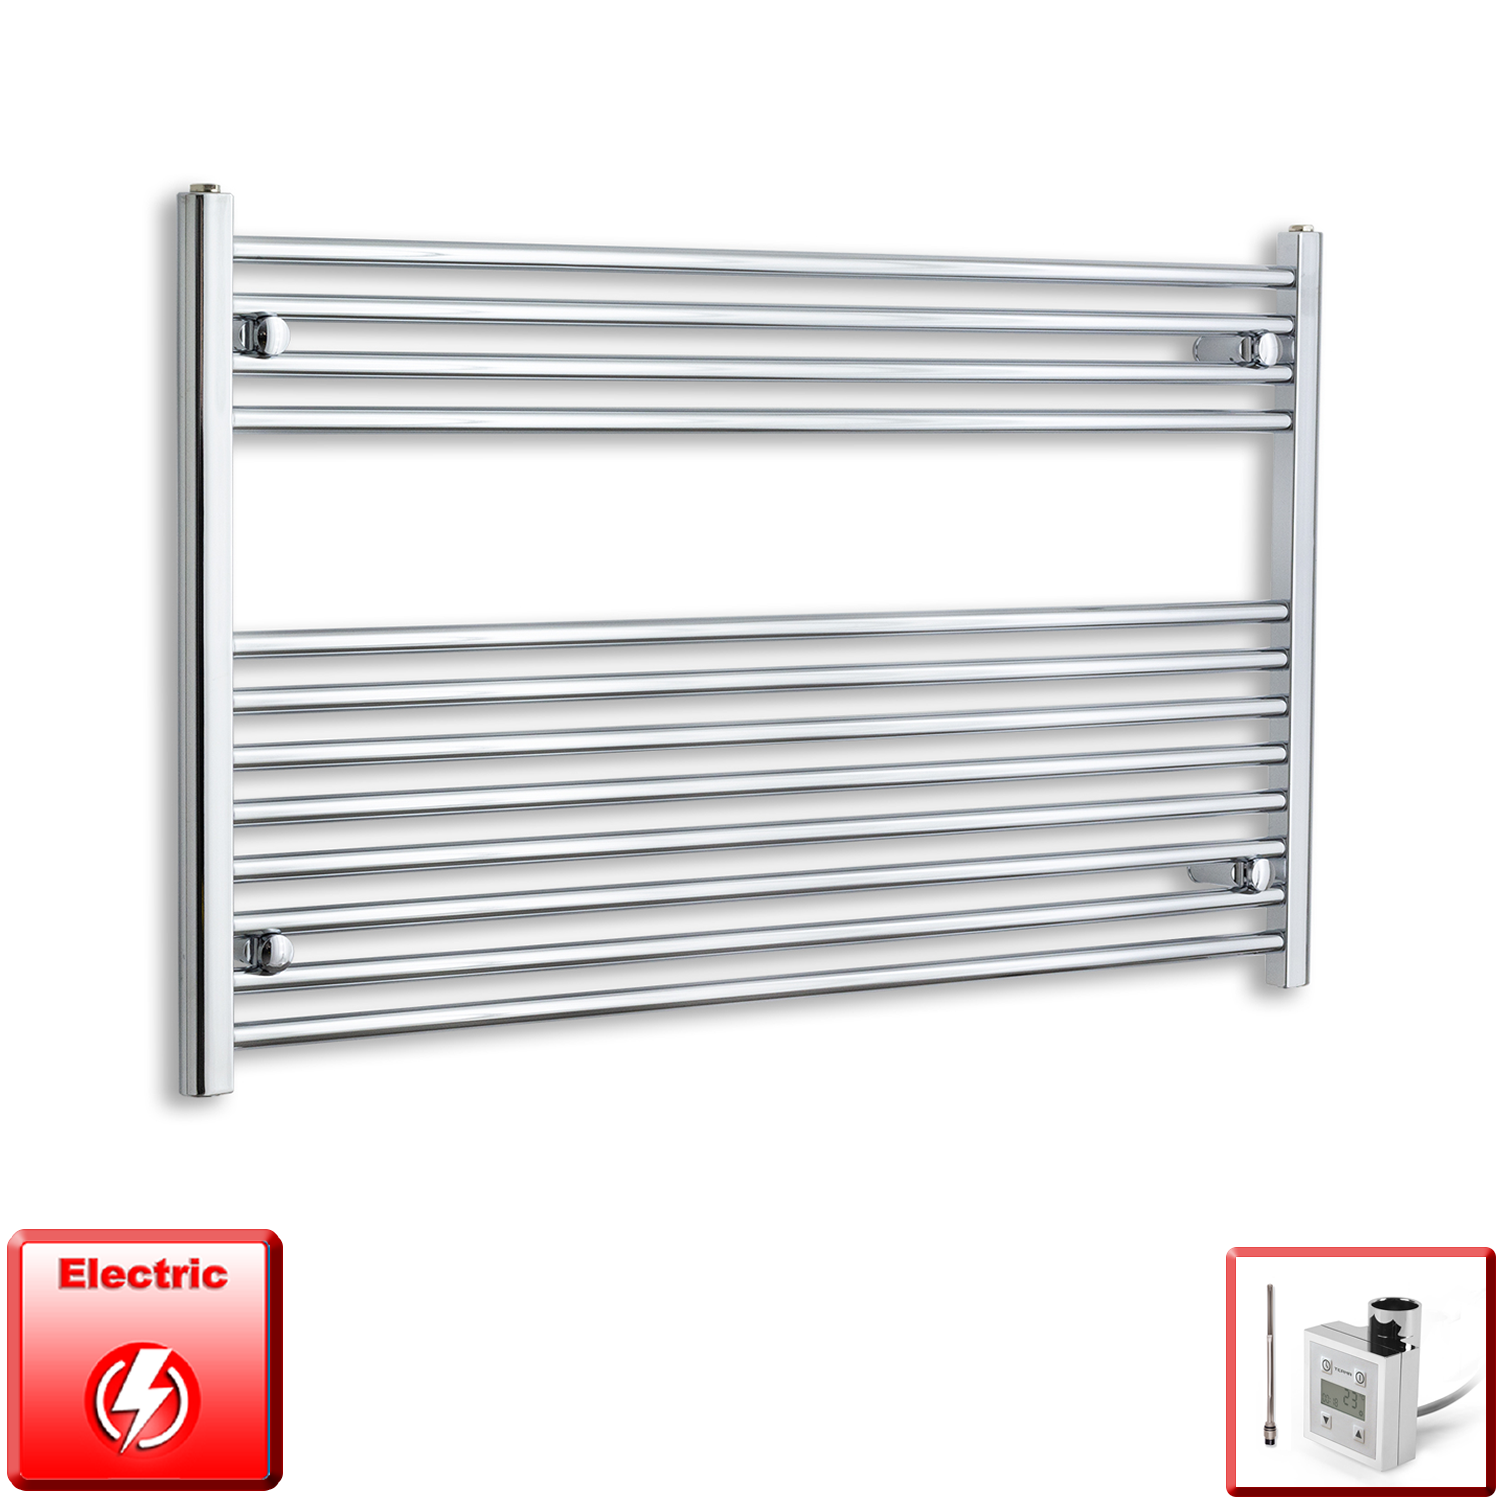 1200mm Wide 700mm High Pre-Filled Chrome Electric Towel Rail Radiator With Thermostatic KTX3 Element